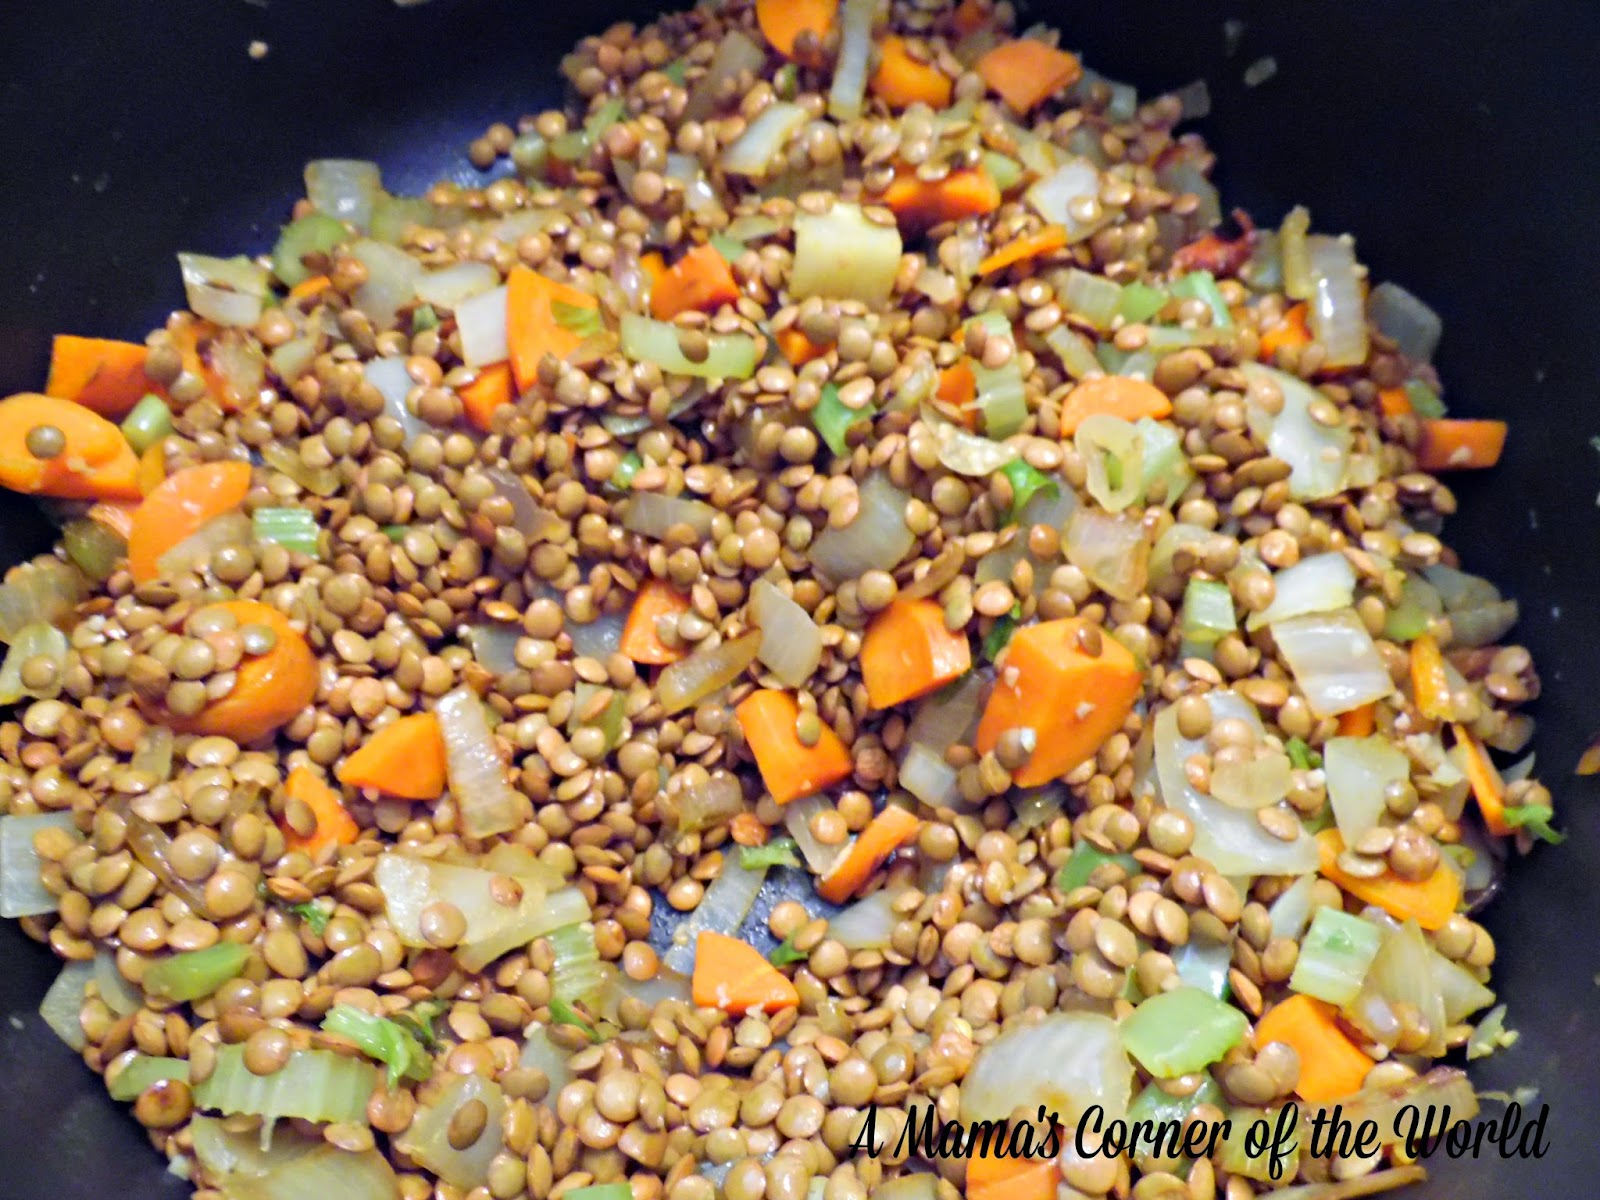 Lentils coated in the vegetable and spice mixutre before adding the broth and water to the soup